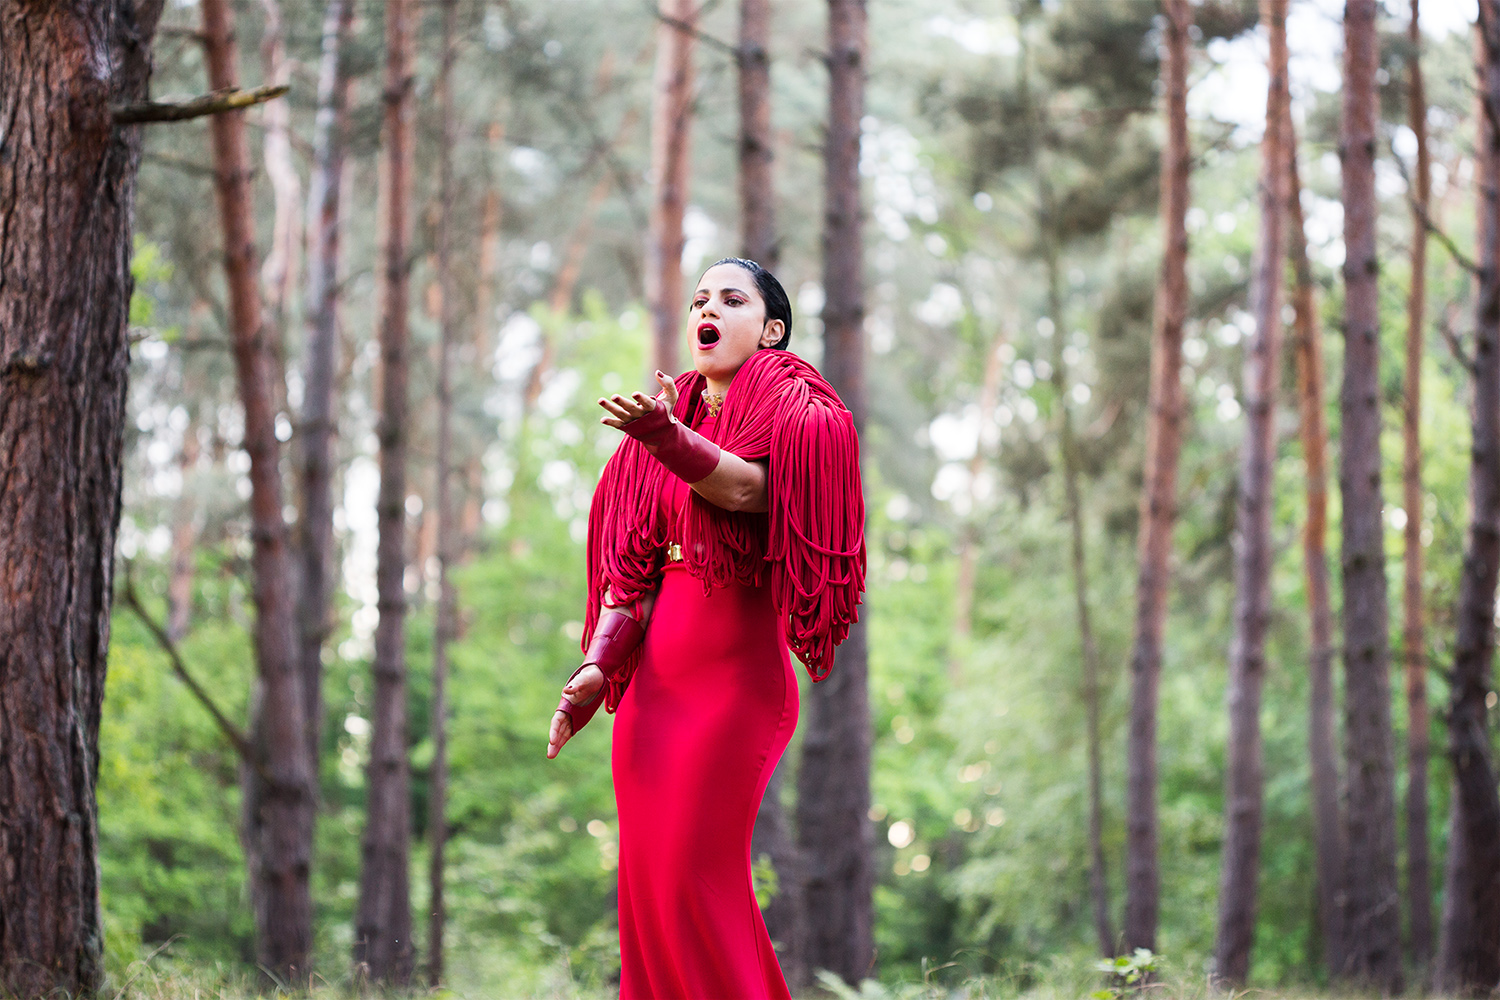 Stills photography at Music Video Shoot Rescuer for tunesian singer songwriter Emel Mathlouthi by Berlin based photographer Caroline Wimmer